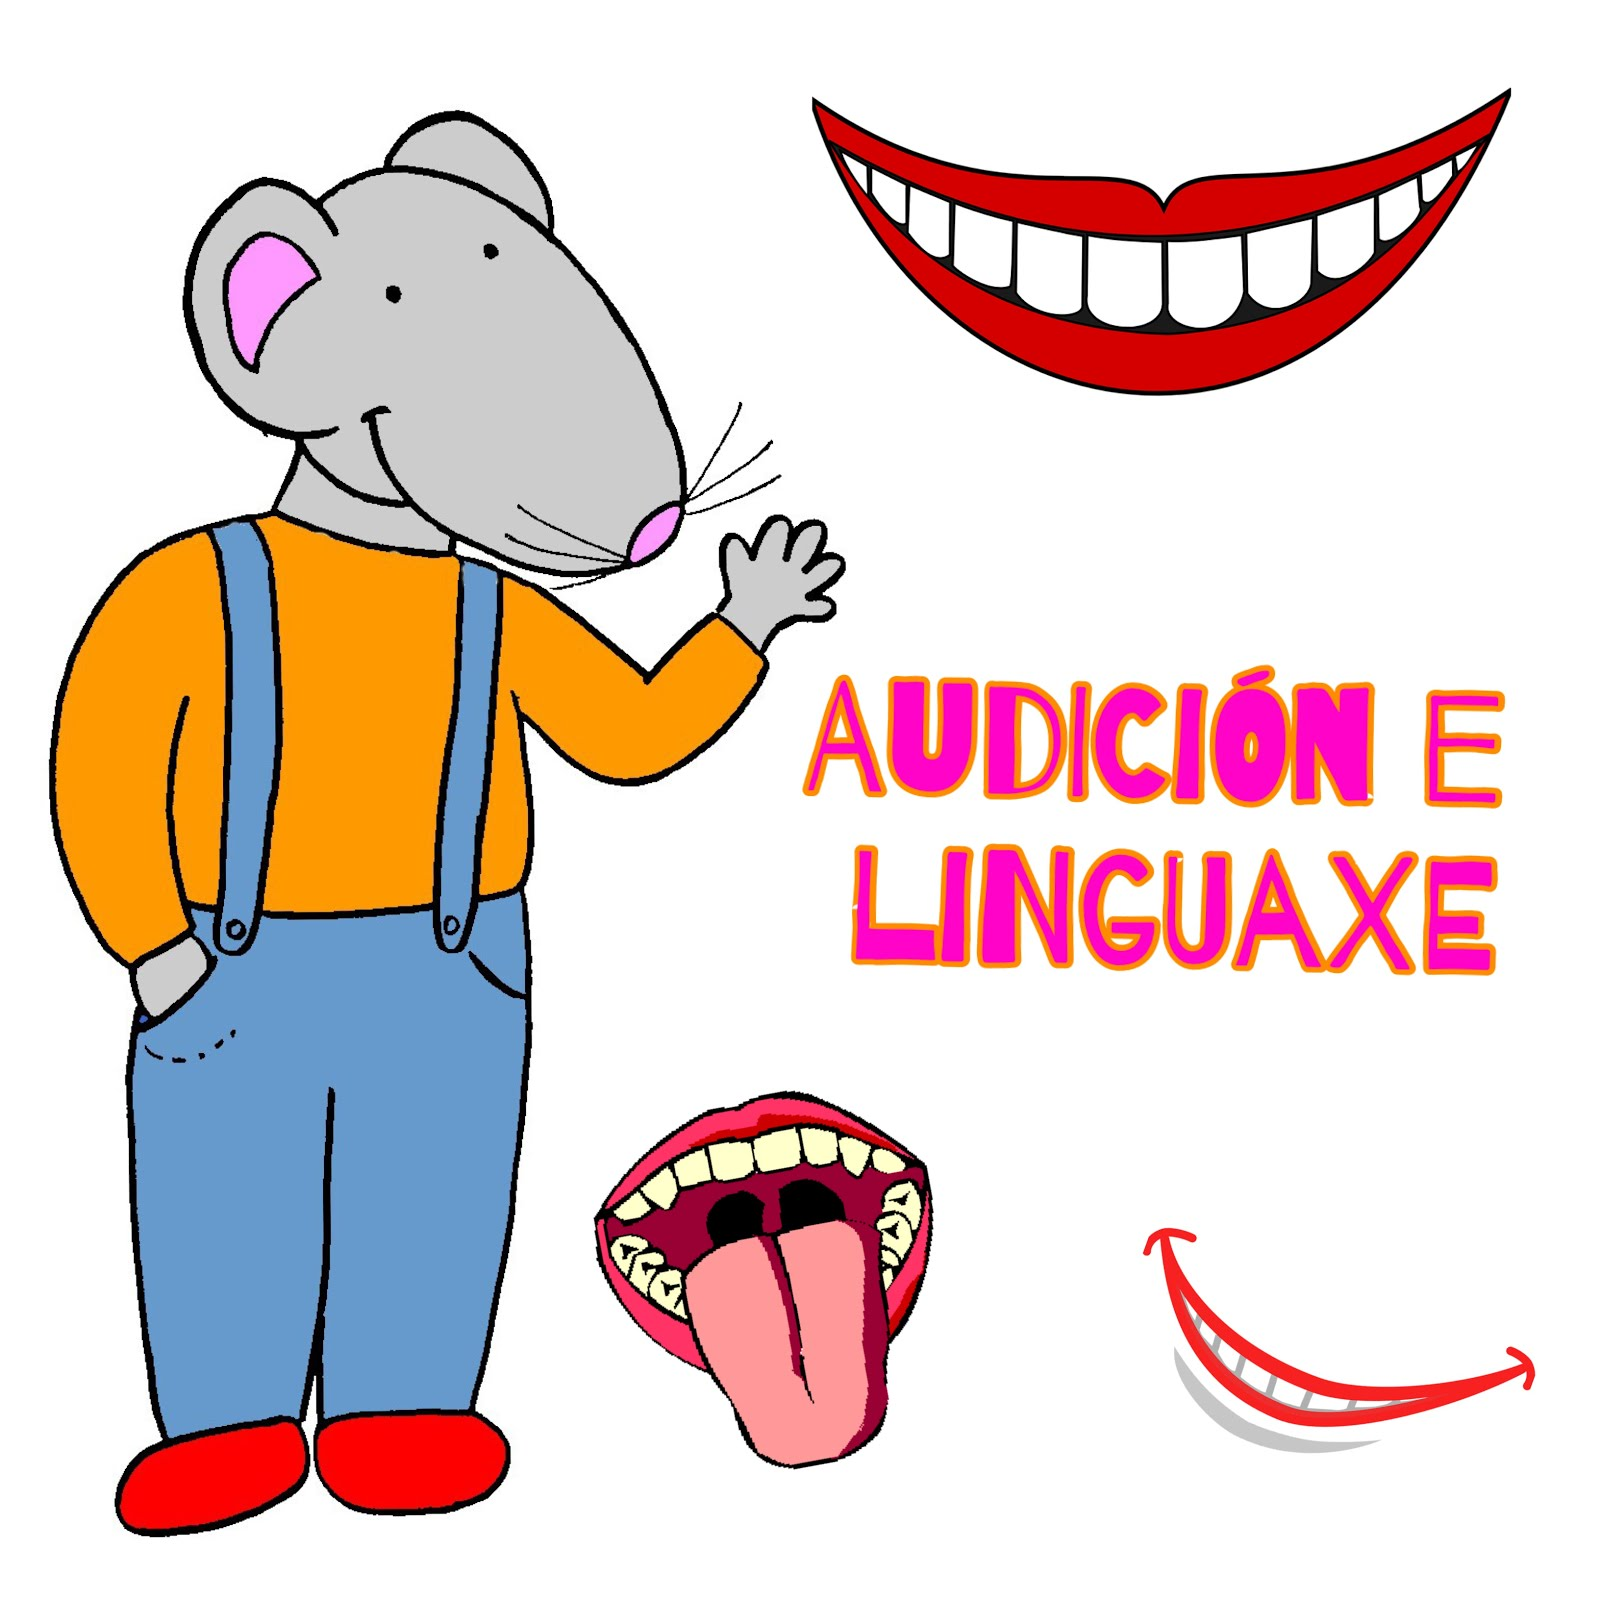 AUDICIÓN E LINGUAXE